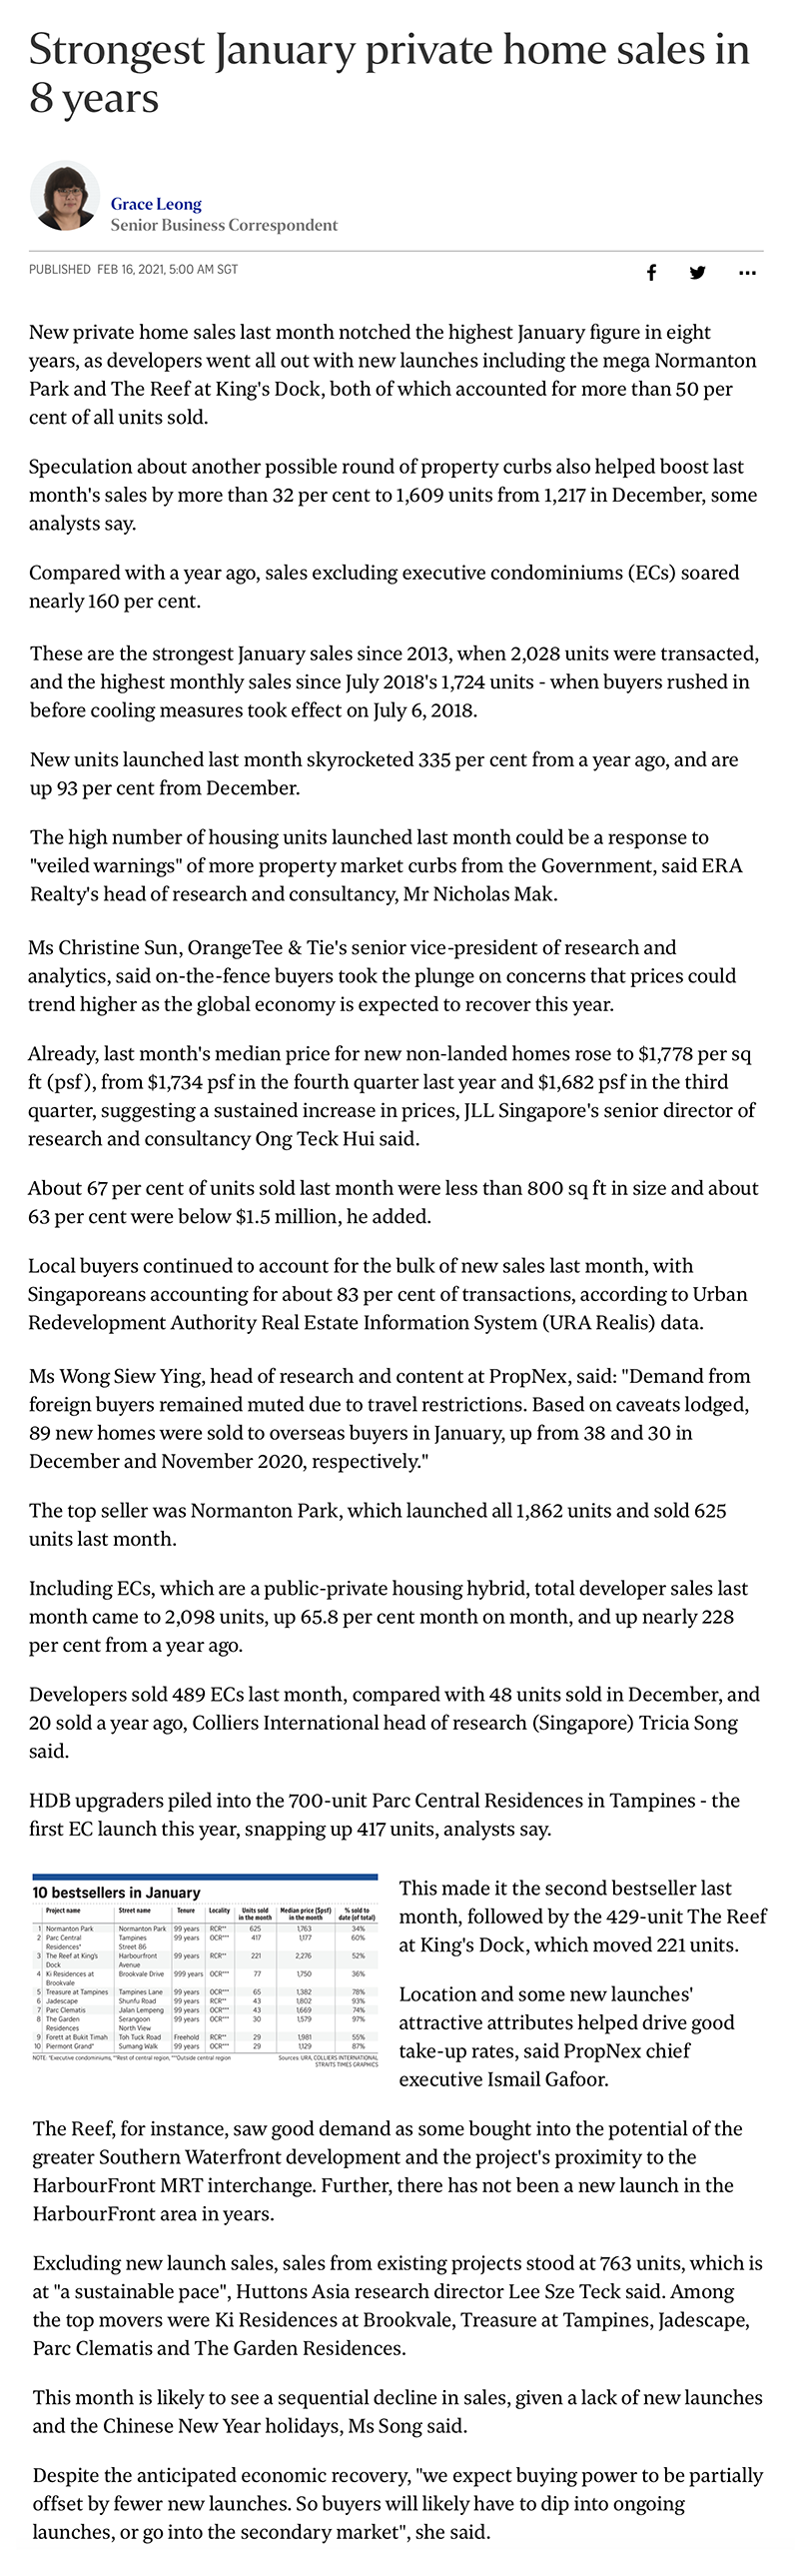 Pasir Ris 8 - Strongest January private home sales in 8 years